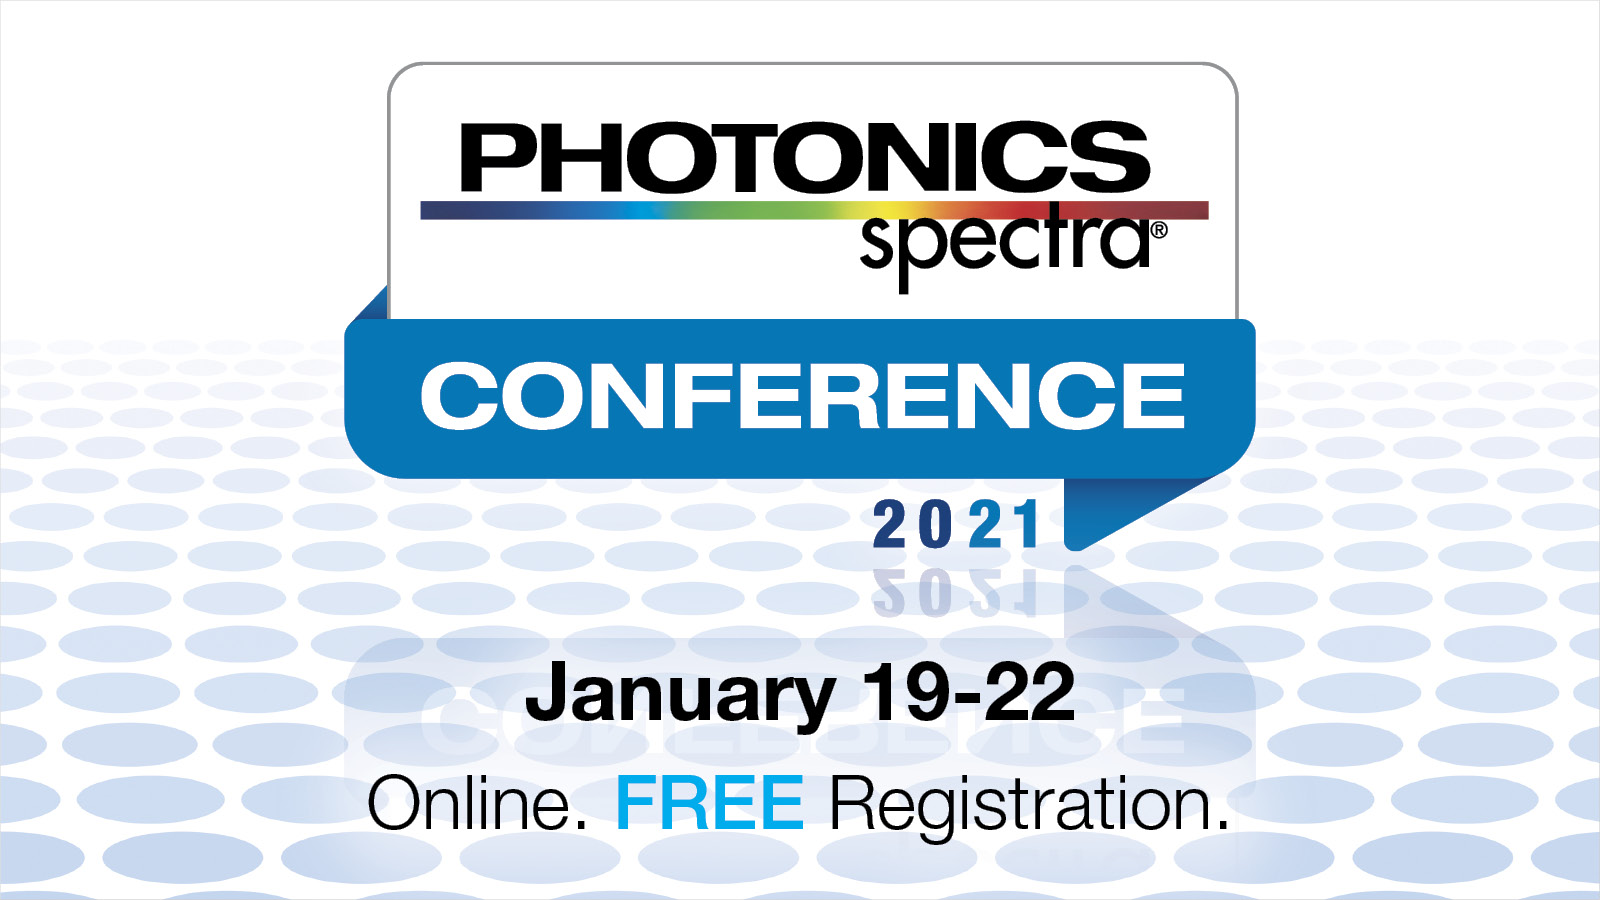 Photonics Spectra Conference 2021